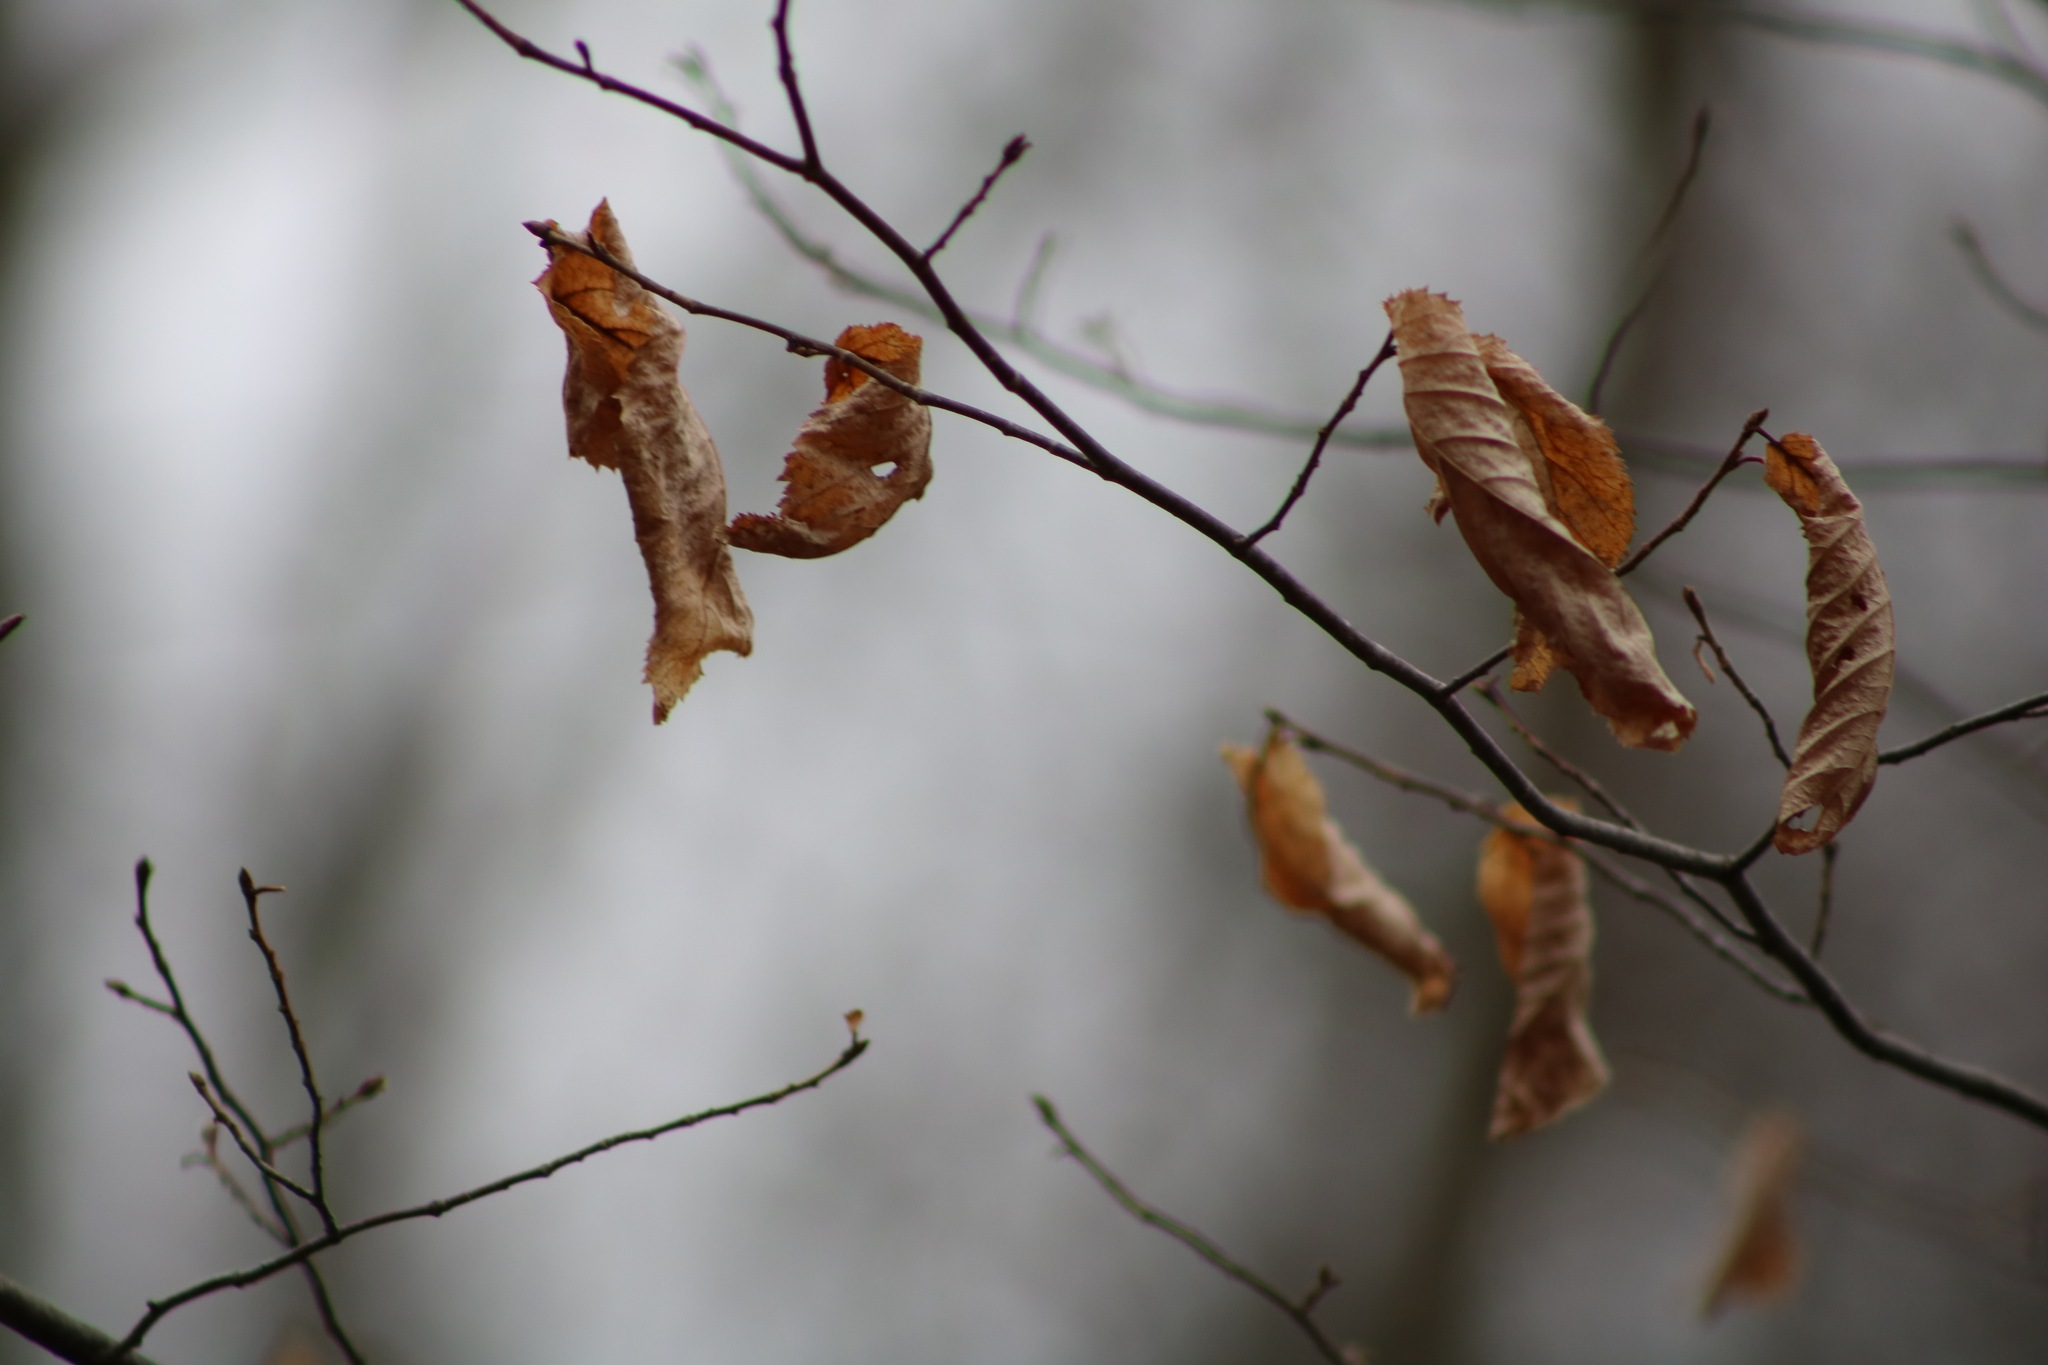 leaves left on the trees by Peter O Merz